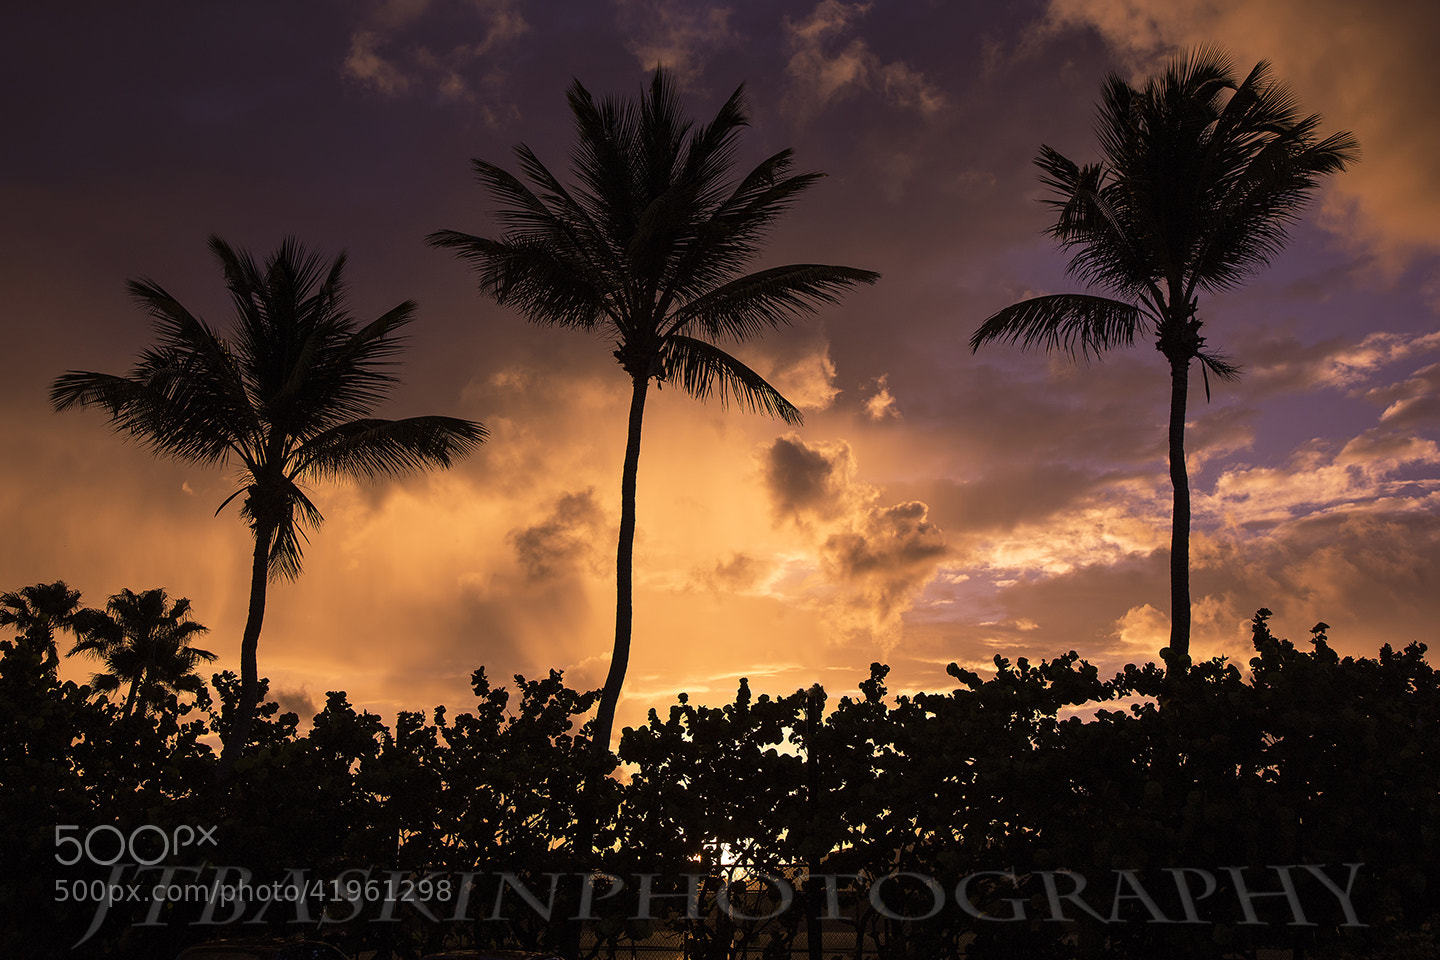 Photograph Sunrise on the Islands - St. Maarten, French West Indies by taylor baskin on 500px